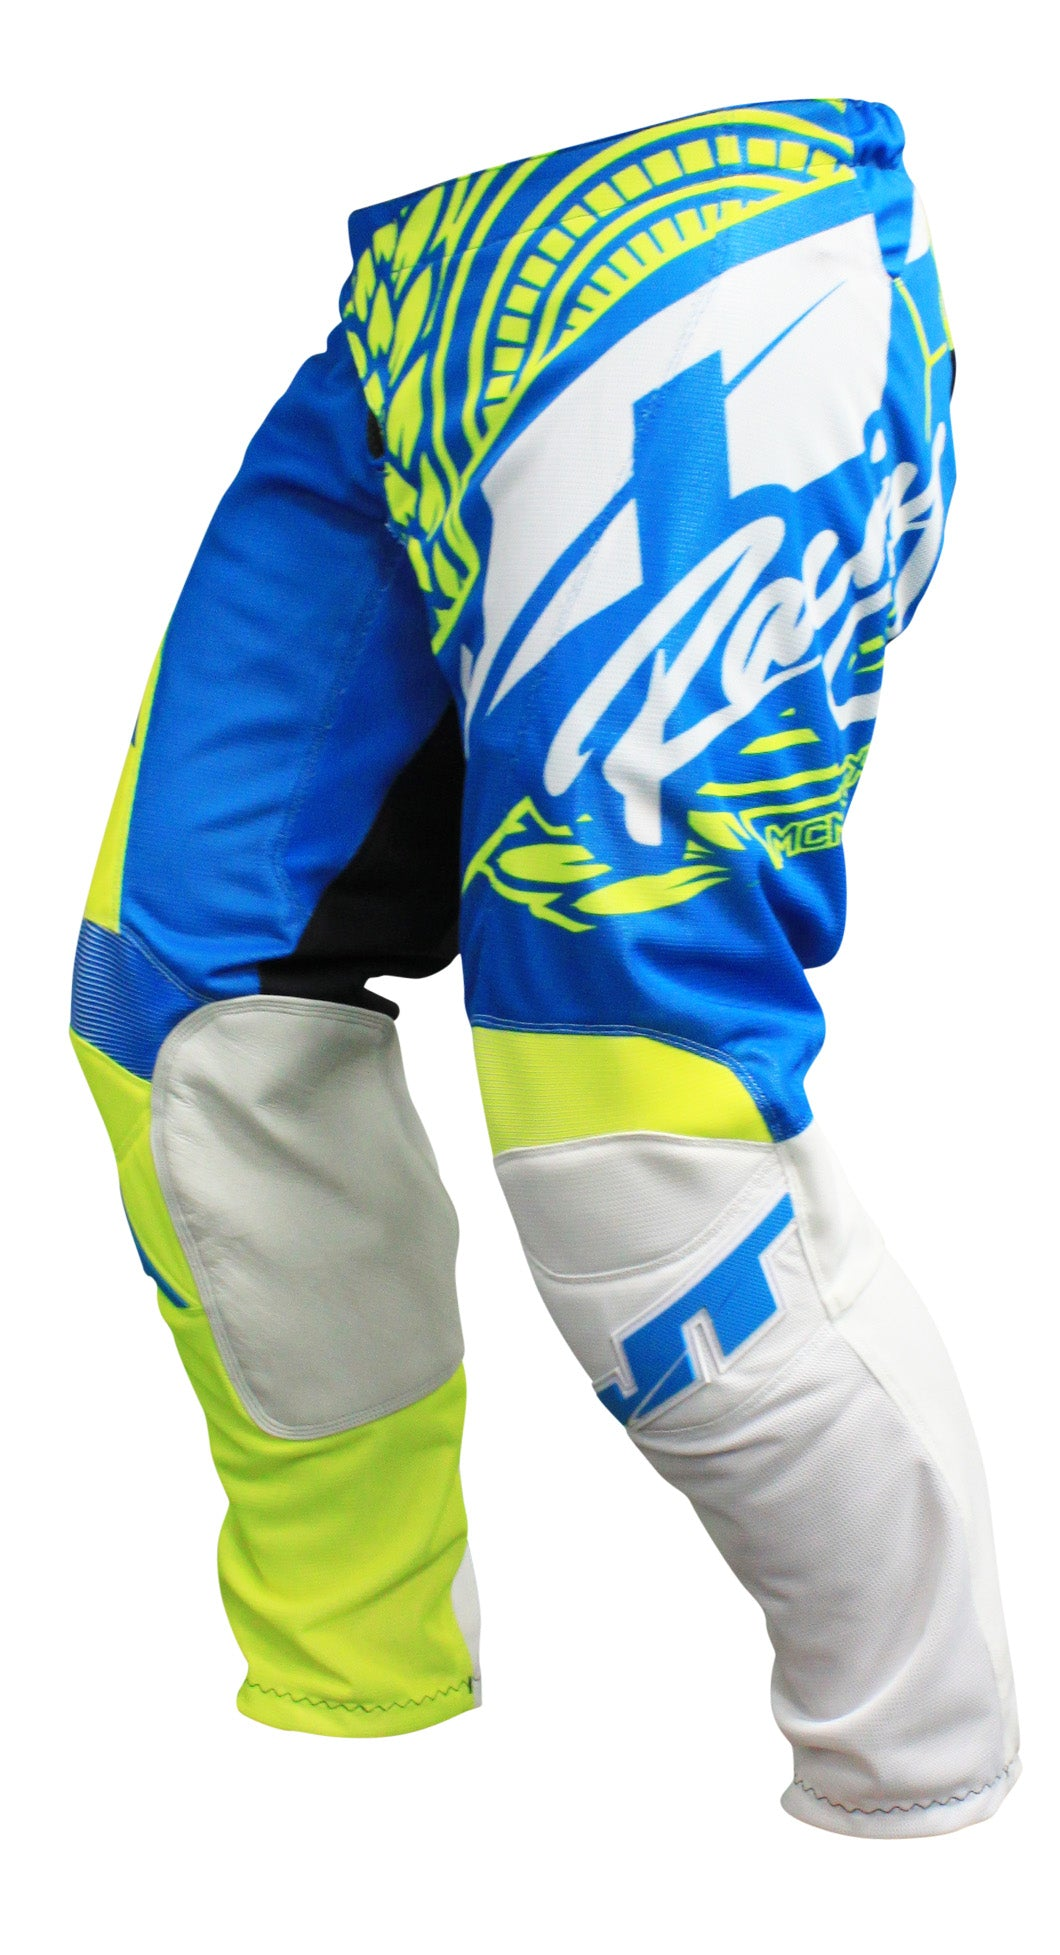 JT RACING USA-2017 Flex-Victory Pants, Neon Yellow/Cyan (Vented)